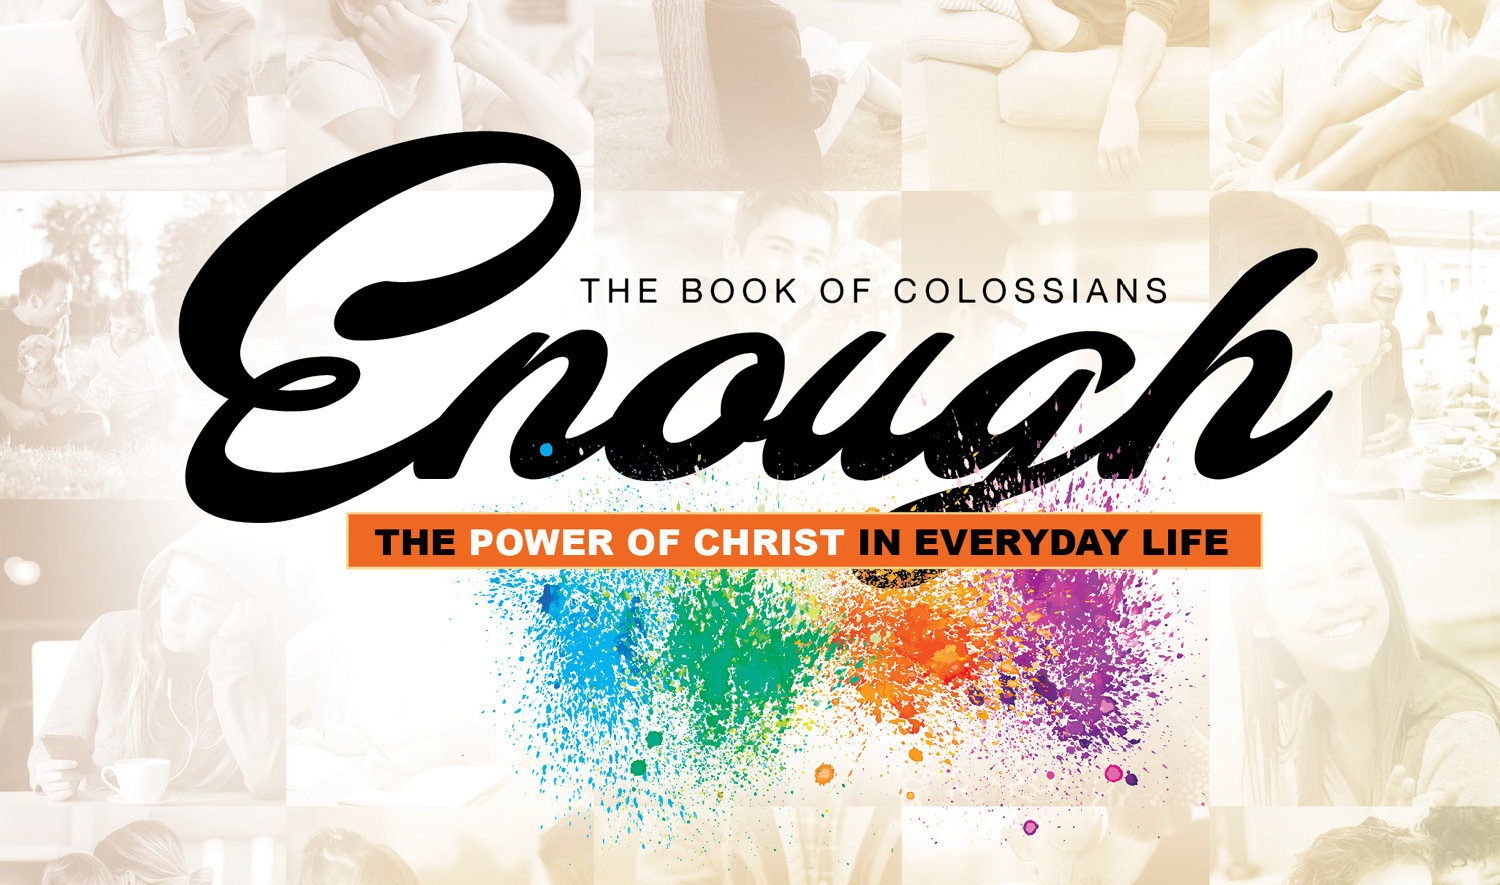 Enough - The Book of Colossians - The Power of Christ in Everyday Life